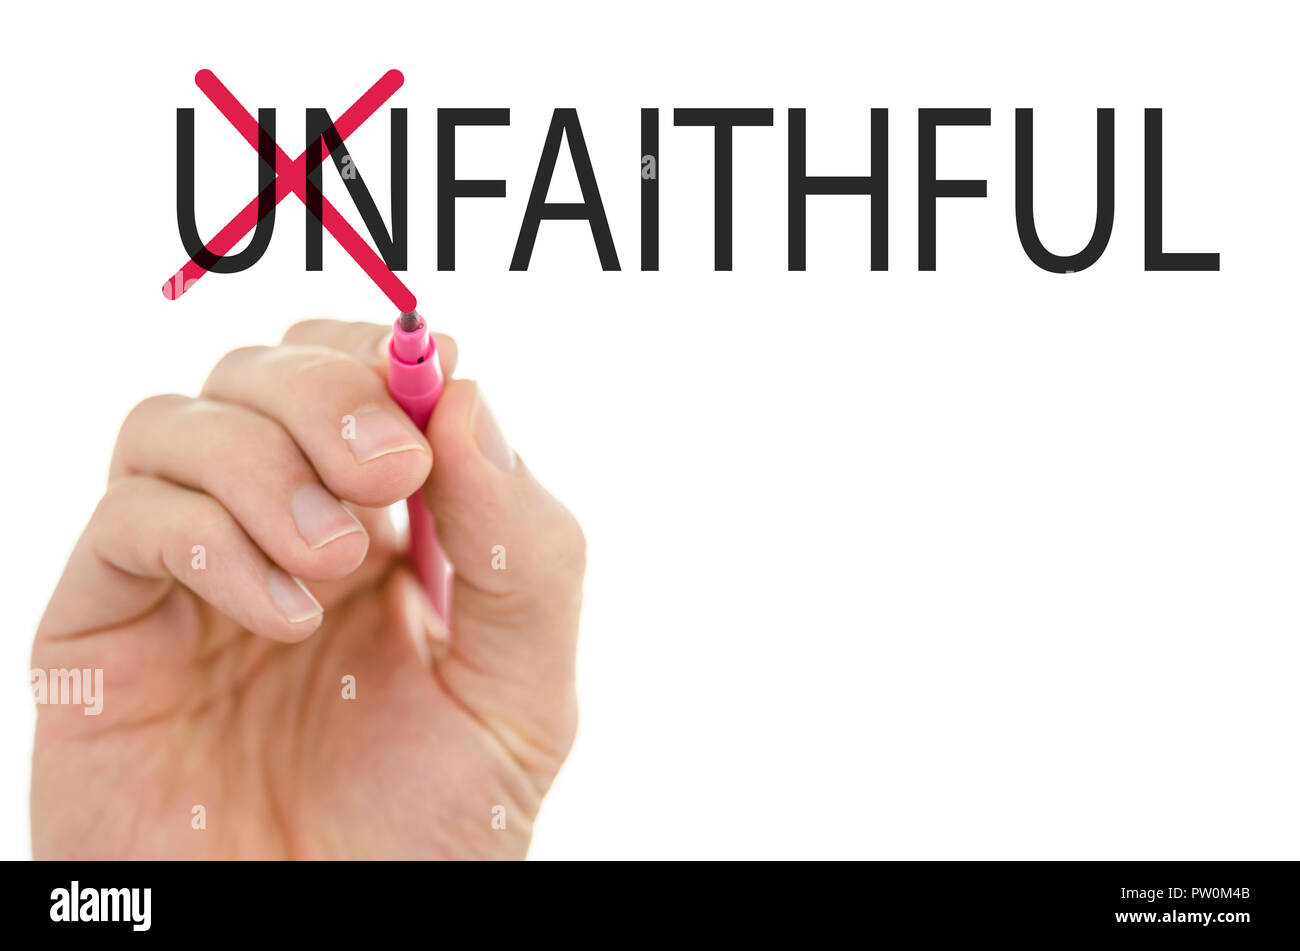 Changing word Unfaithful into Faithful by crossing off letters un. - Stock Image